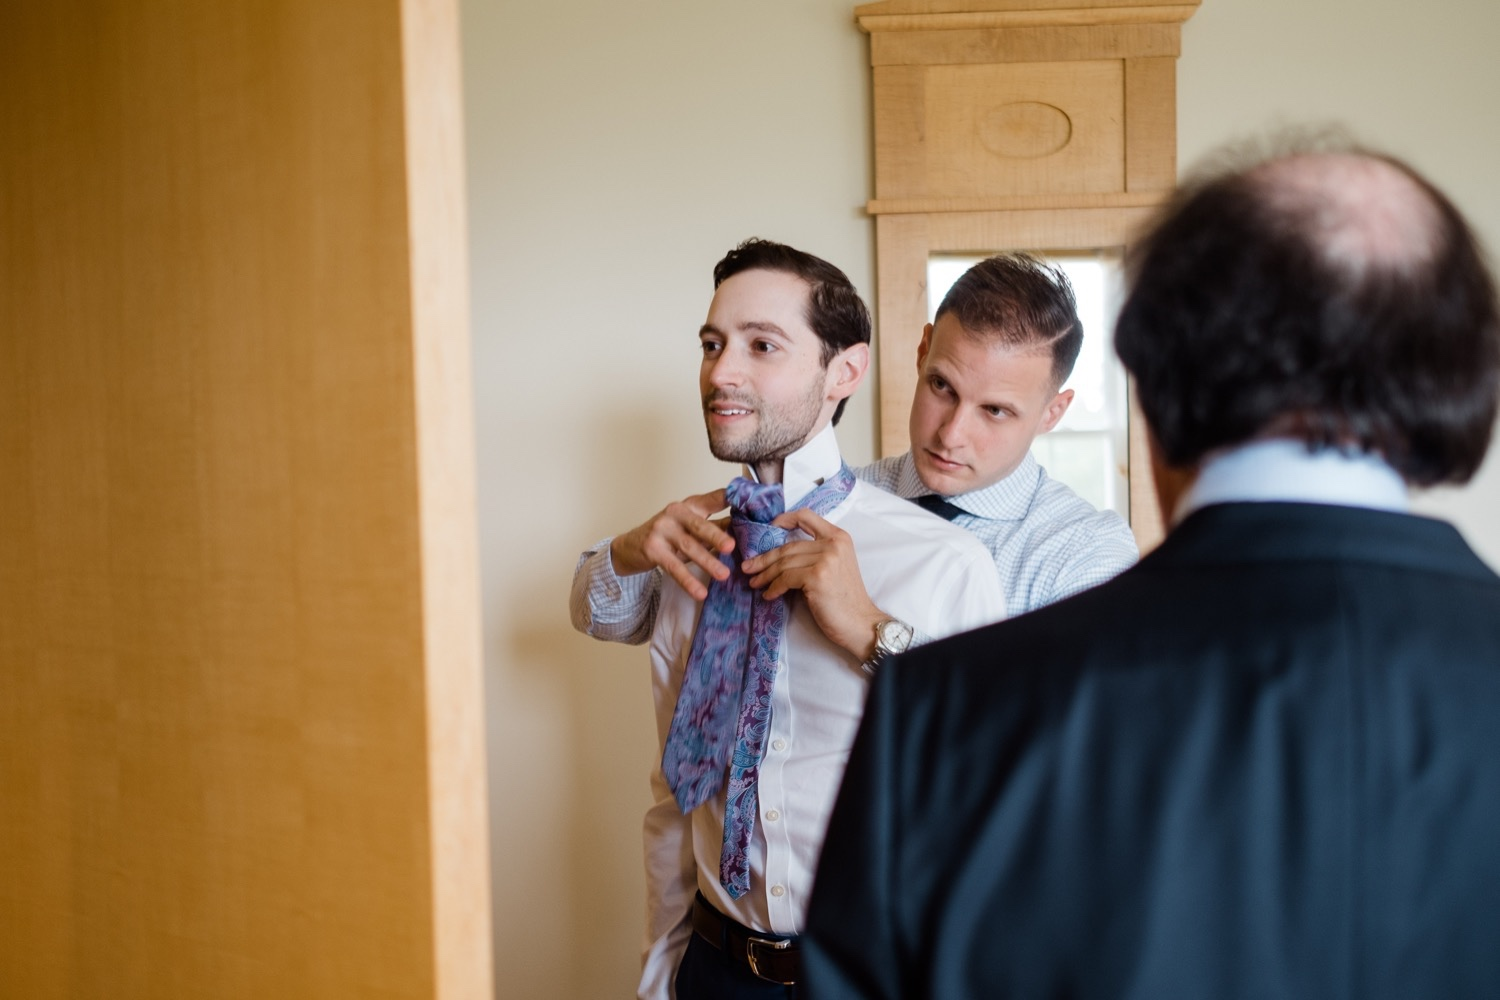 The Garrison Wedding, The Garrison venue, Hudson Valley wedding, hudson valley wedding photographer, catskills wedding photographer, the garrison wedding photos, best catskills wedding photographer, getting ready, guys getting ready, getting ready photos, wedding photo ideas